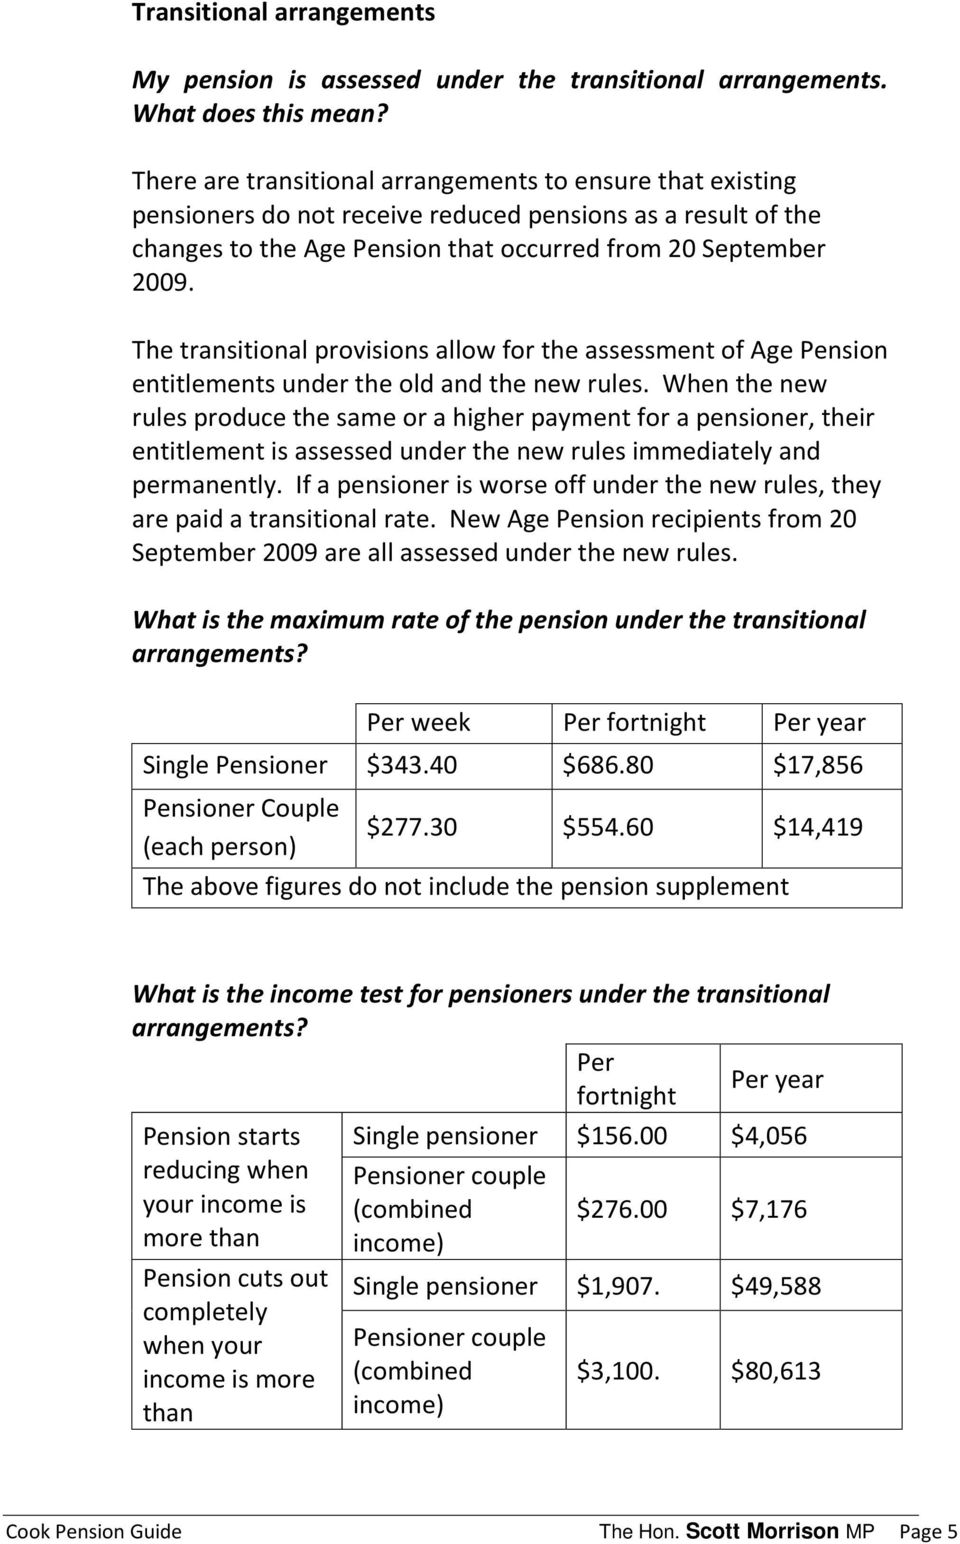 The transitional provisions allow for the assessment of Age Pension entitlements under the old and the new rules.